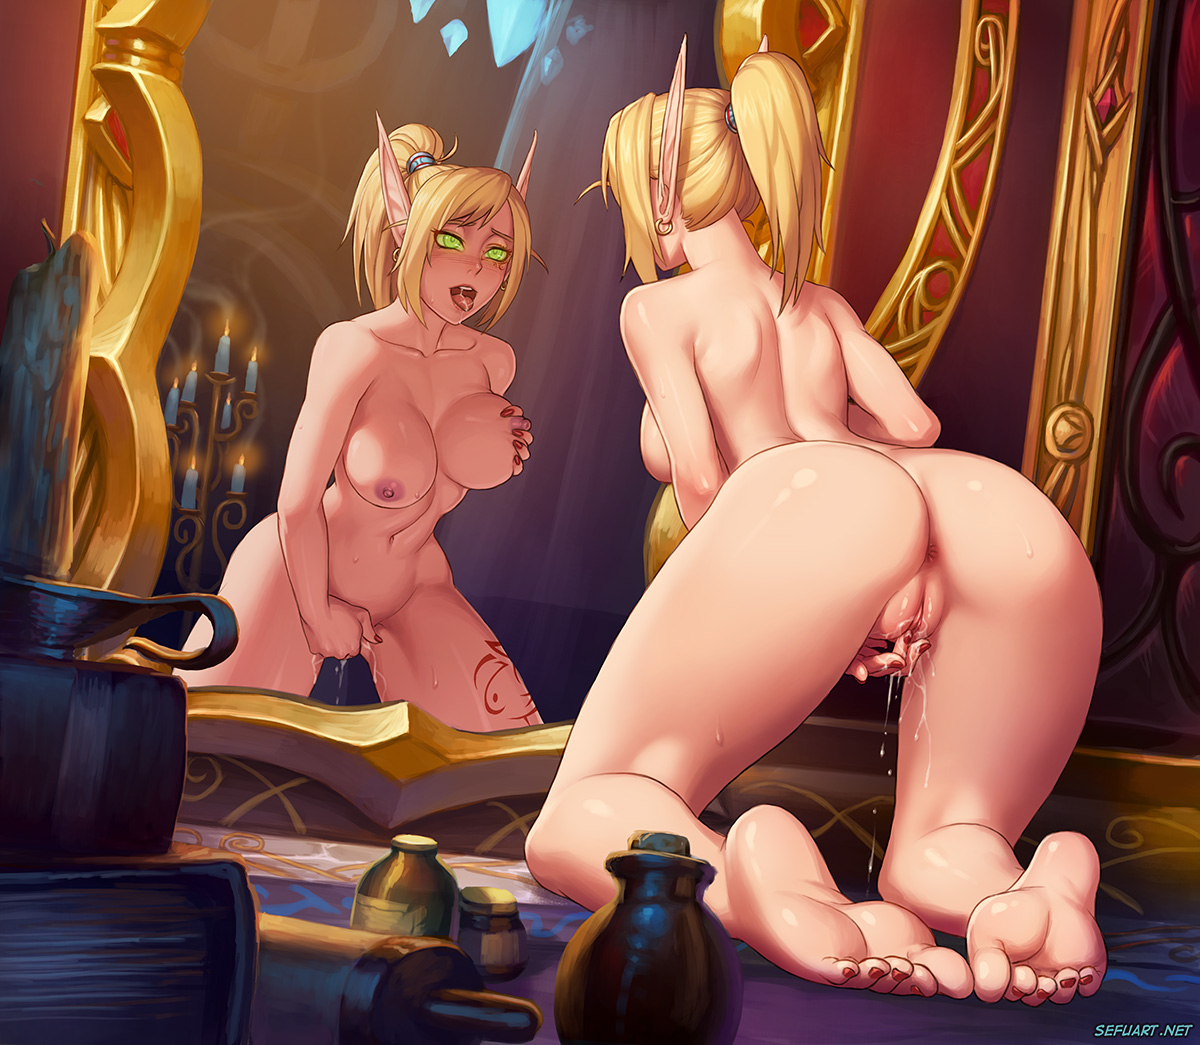 World of warcraft blood elf lesbian sex porn image